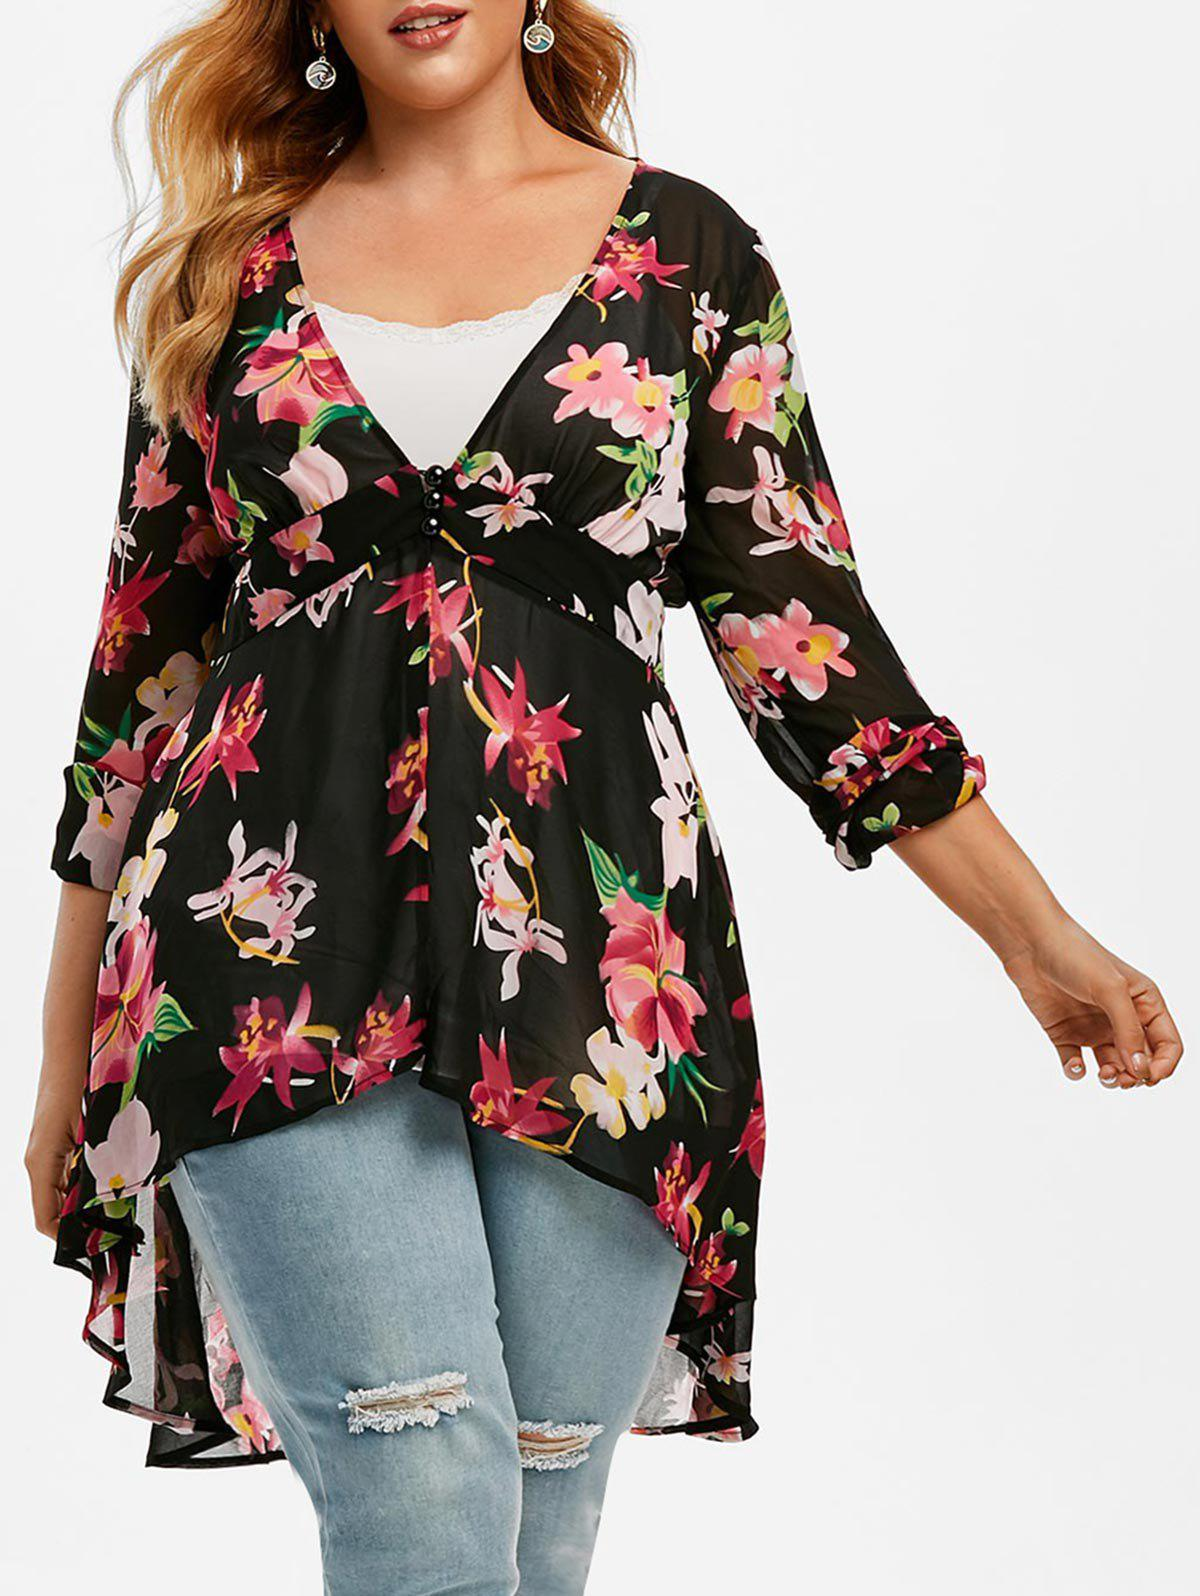 Plus Size Floral Print High Low Blouse and Tank Top Set - BLACK 5X